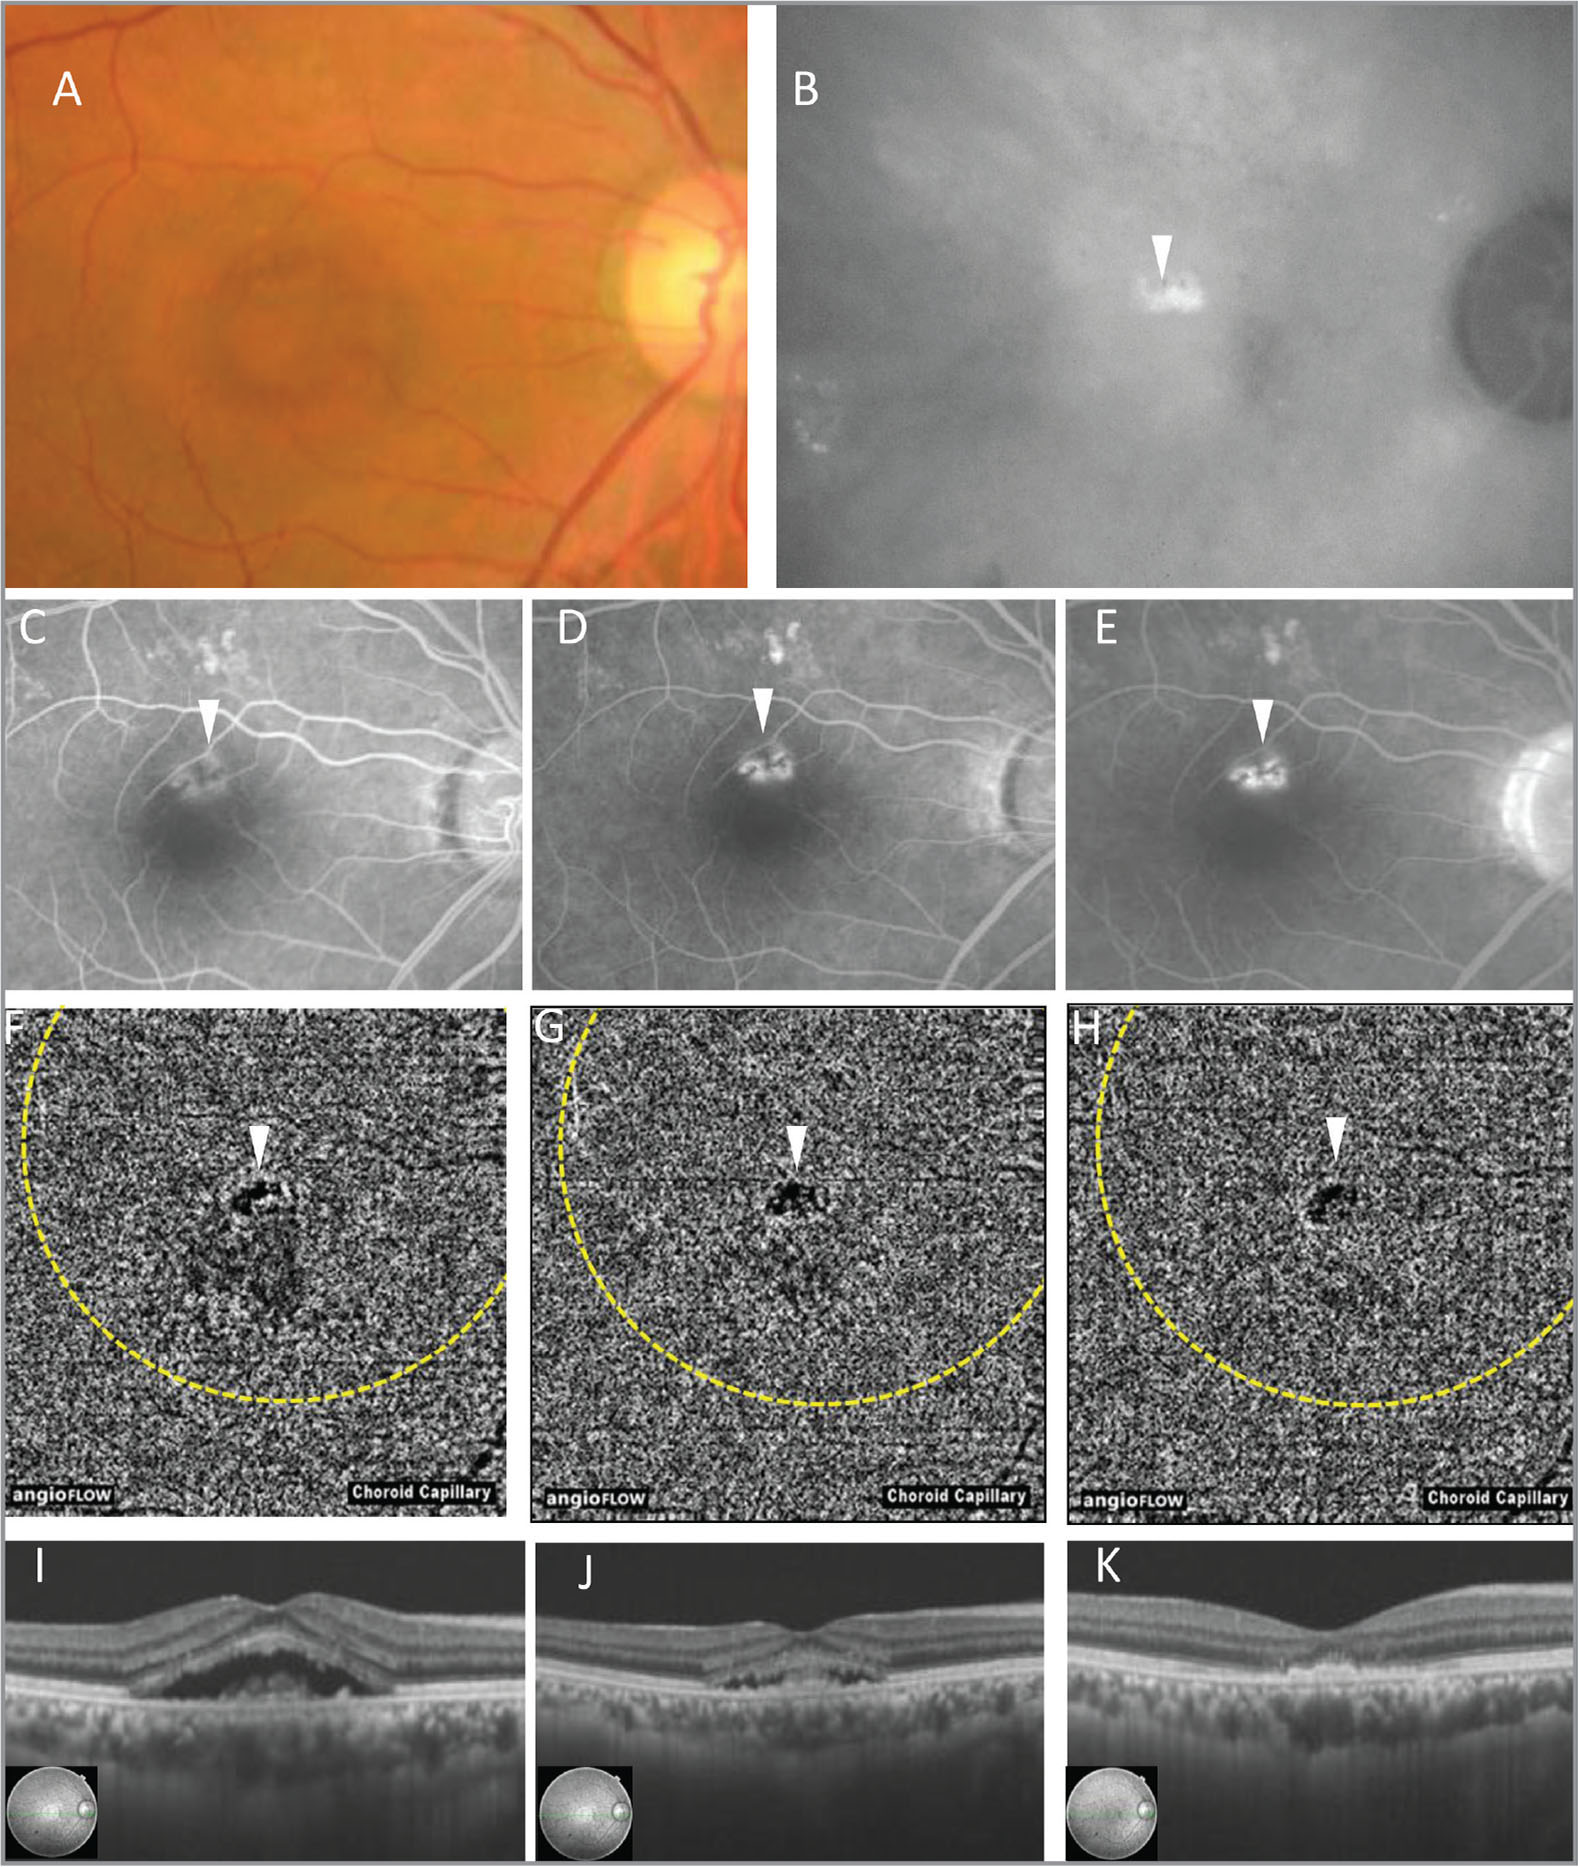 A;Multimodal imaging of the right eye of Case 1. (A) Color fundus photograph shows serous retinal detachment and pigment epithelial detachment (PED) at the macula. (B) Middle phase of indocyanine green angiography shows hyperfluorescence at the macula. The PED is located at the upper fovea (white arrowhead). (C–E) Fluorescein angiography in early to middle phase (C), middle phase (D), and late phase (E). The PED is located at the upper fovea (white arrowhead). (F–H) Optical coherence tomography angiography (OCTA) before photodynamic therapy (PDT) (F), 1 week after PDT (G), and 1 month after PDT (H). The PED is located at the upper fovea (white arrowhead). The PDT spot area is encircled by yellow dots. Before PDT, focal high-intensity lesion indicating abnormal choroidal vessels and flow void lesion are observed at the choriocapillaris layer (F). These findings are diminished progressively at 1 week and 1 month after PDT (G, H). (I–K) OCT before PDT (I), 1 week after PDT (J), and 1 month after PDT (K).